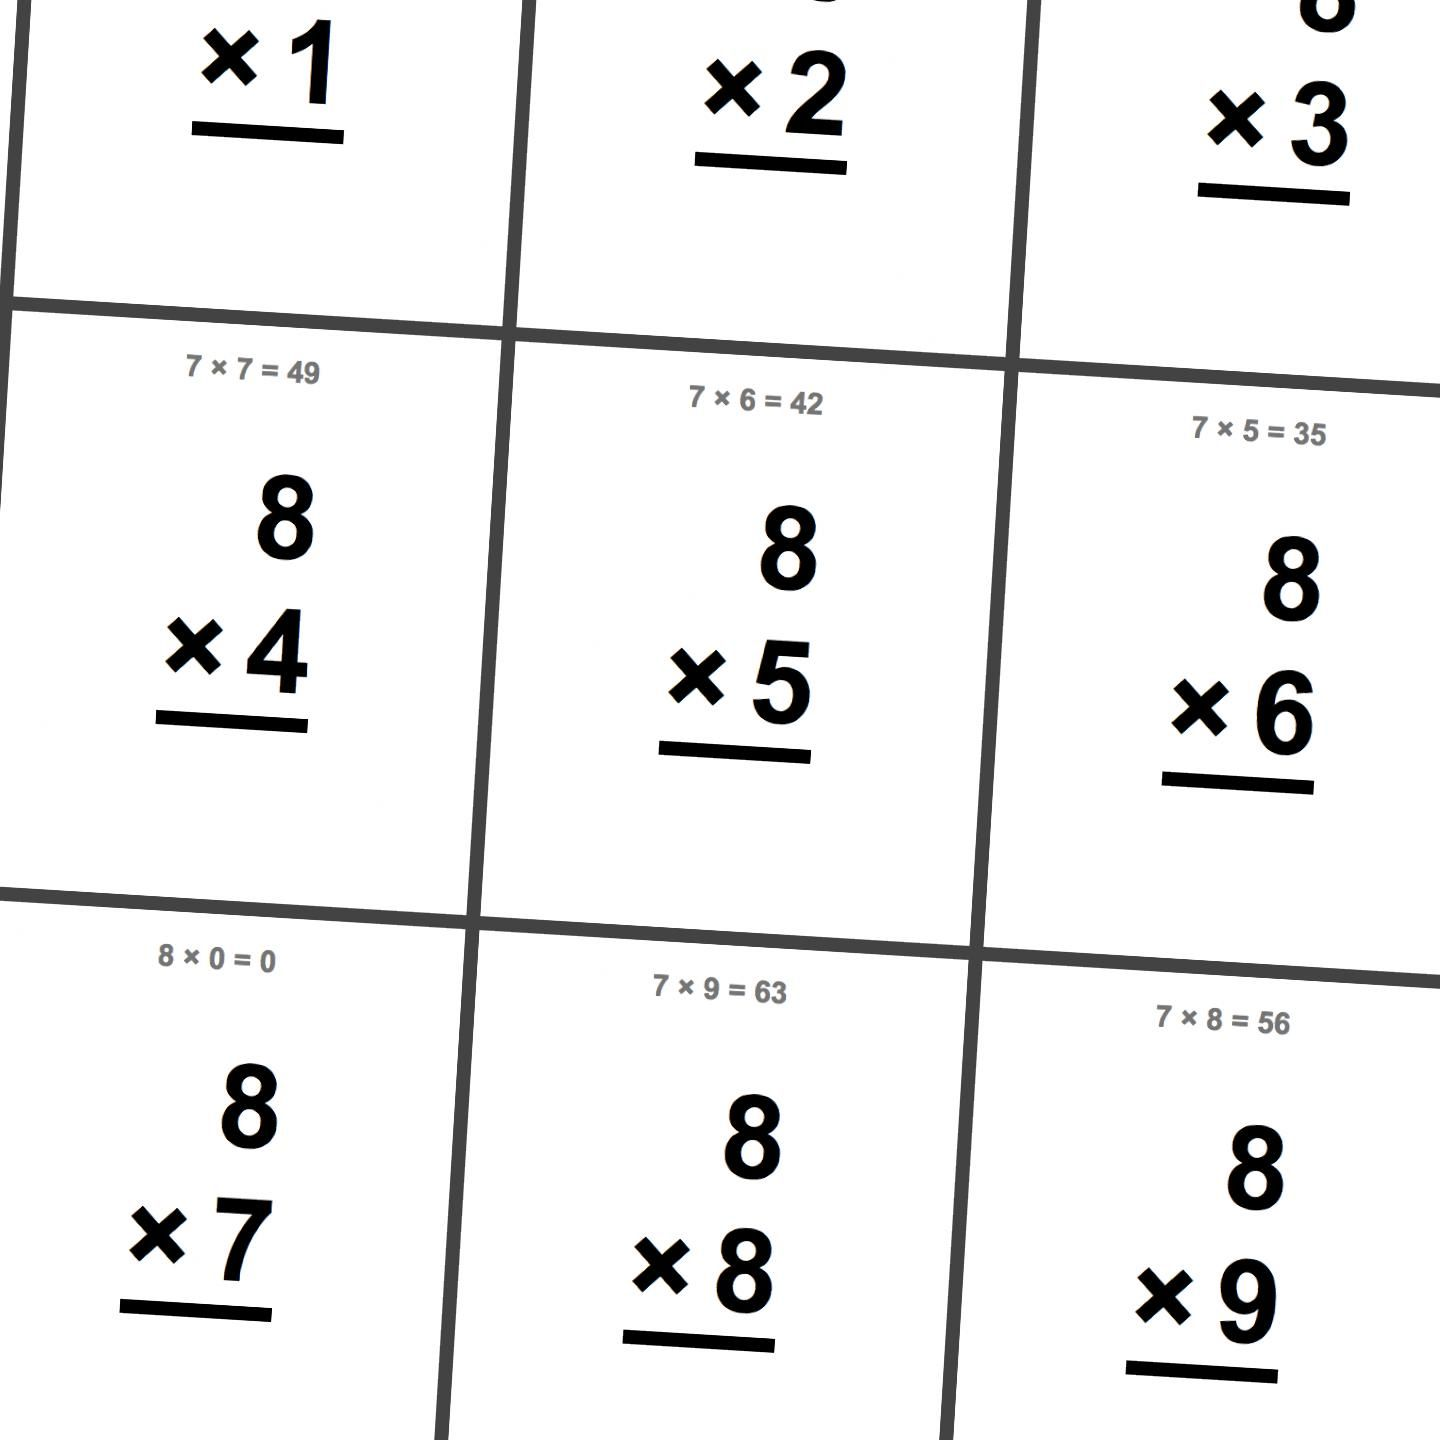 picture relating to Math Facts Flashcards Printable referred to as Absolutely free printable flash playing cards for multiplication math details